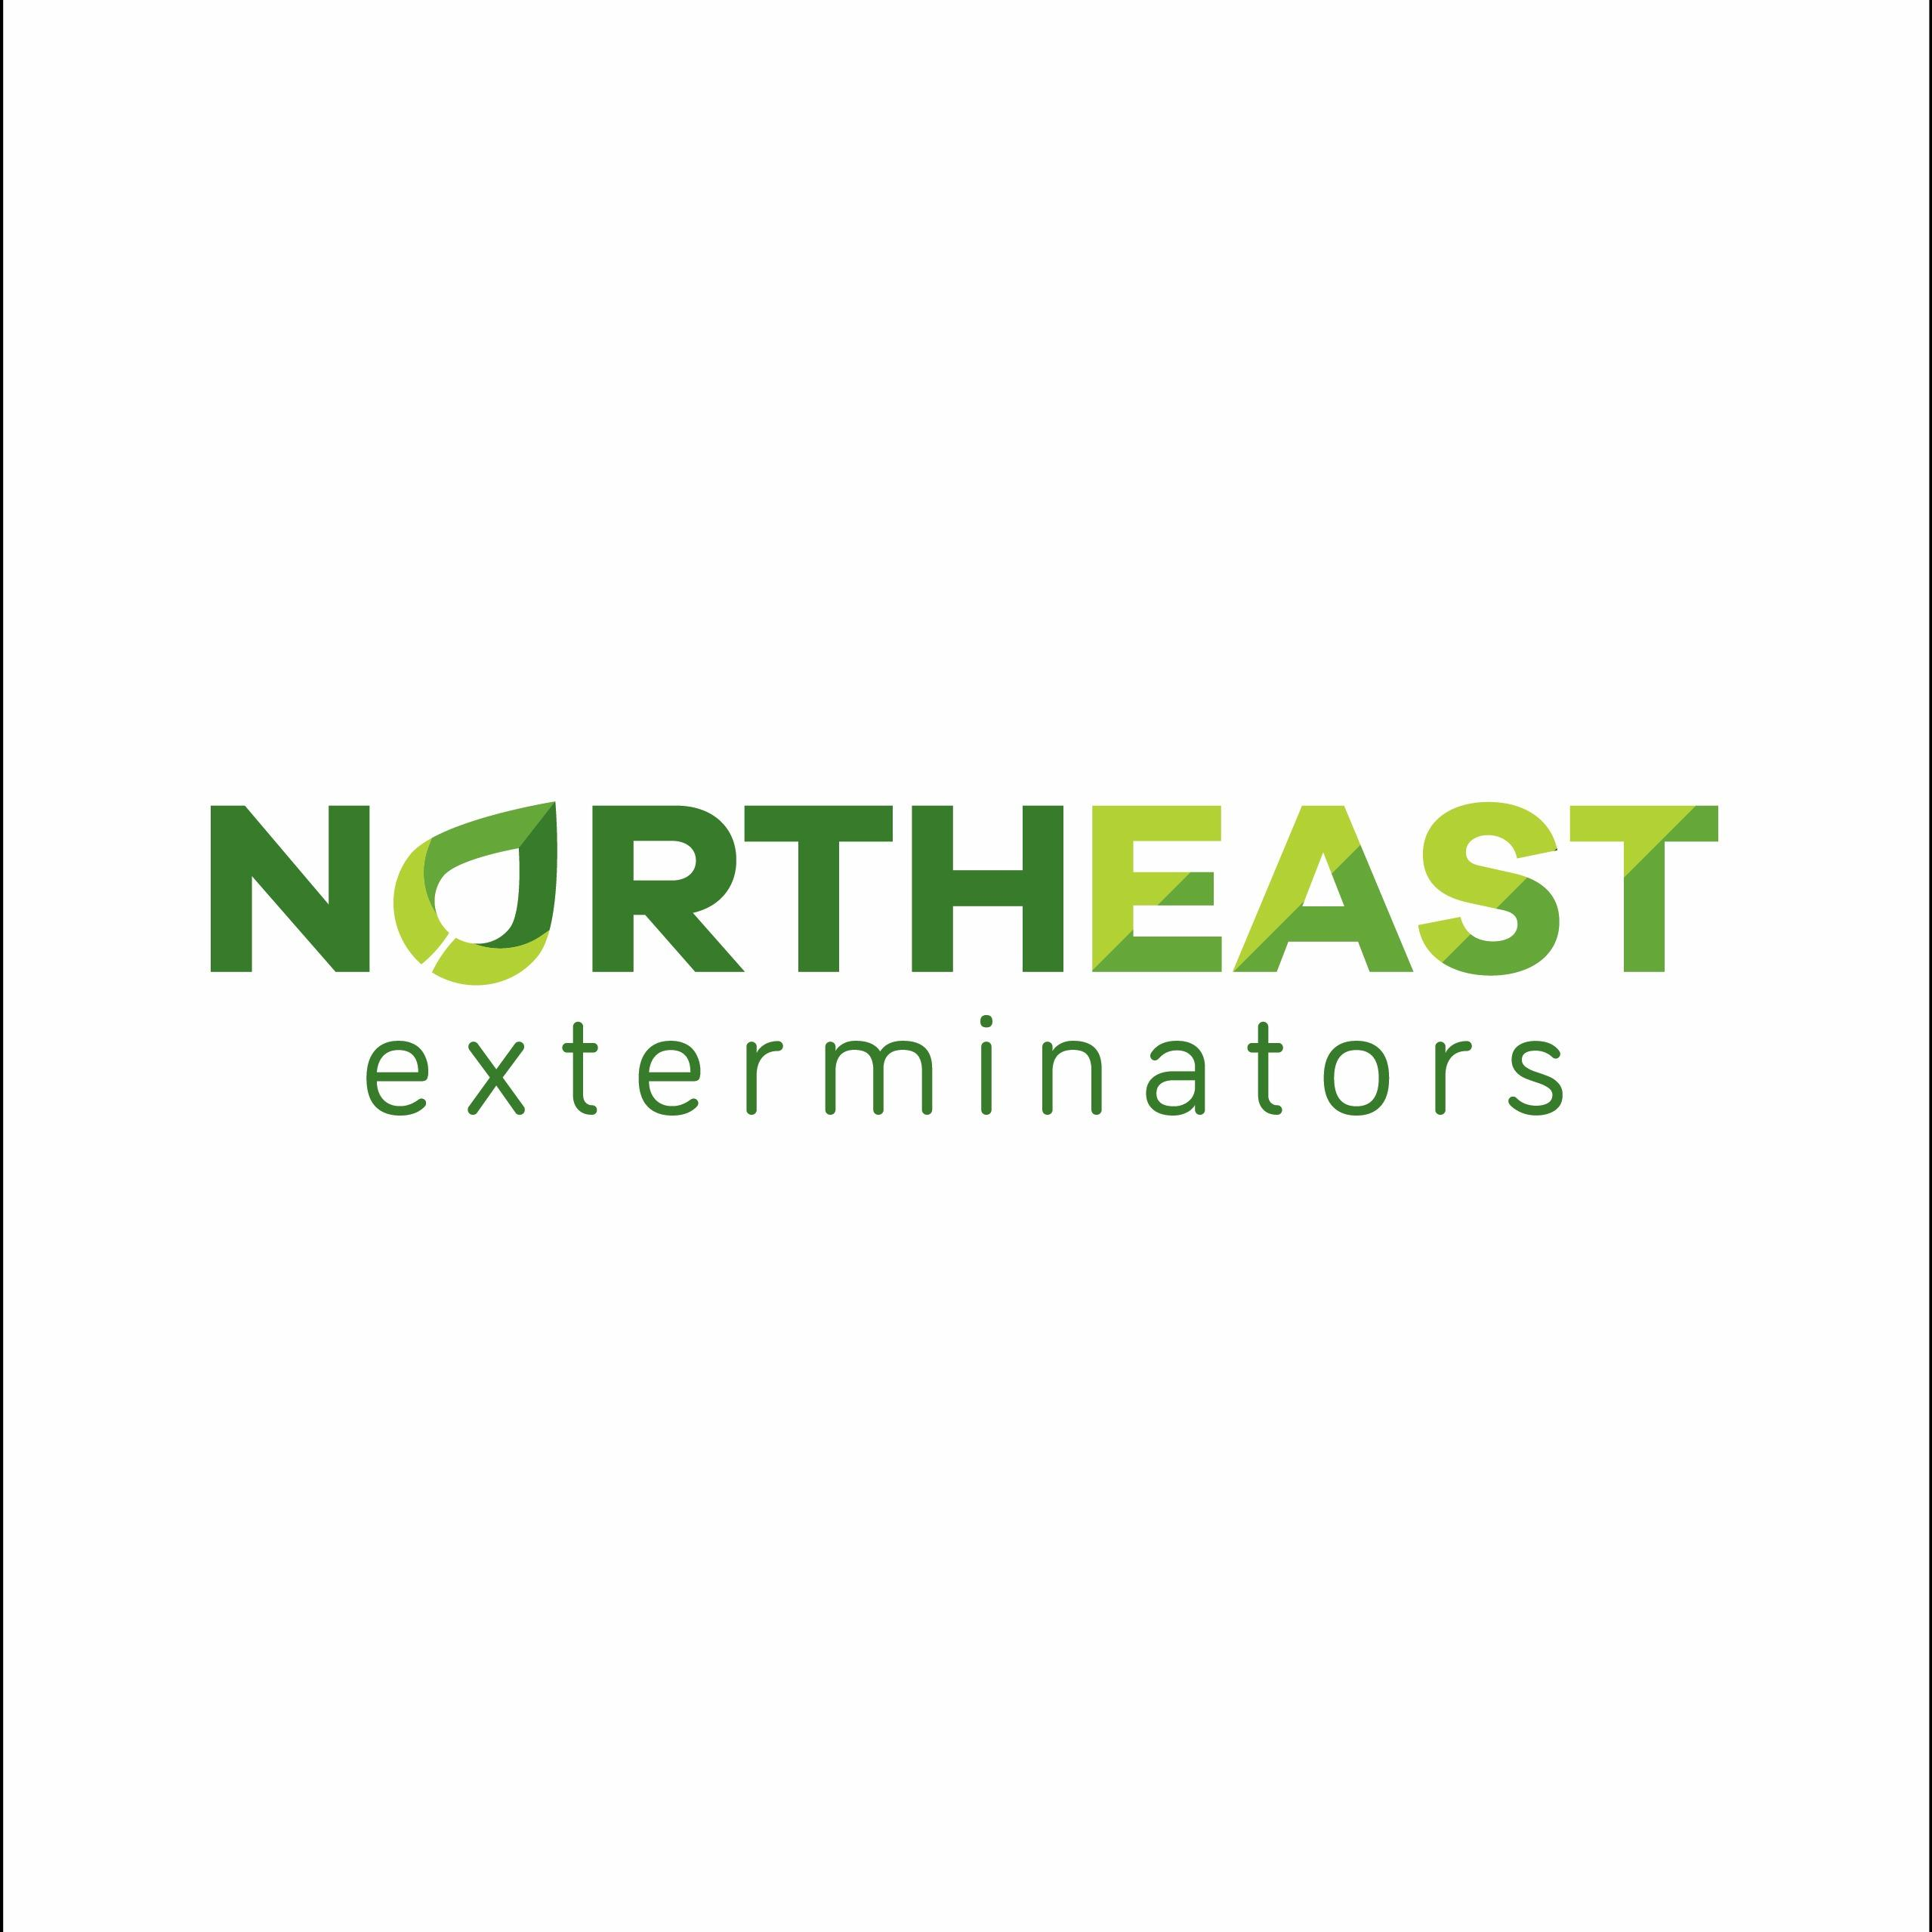 Northeast Exterminators